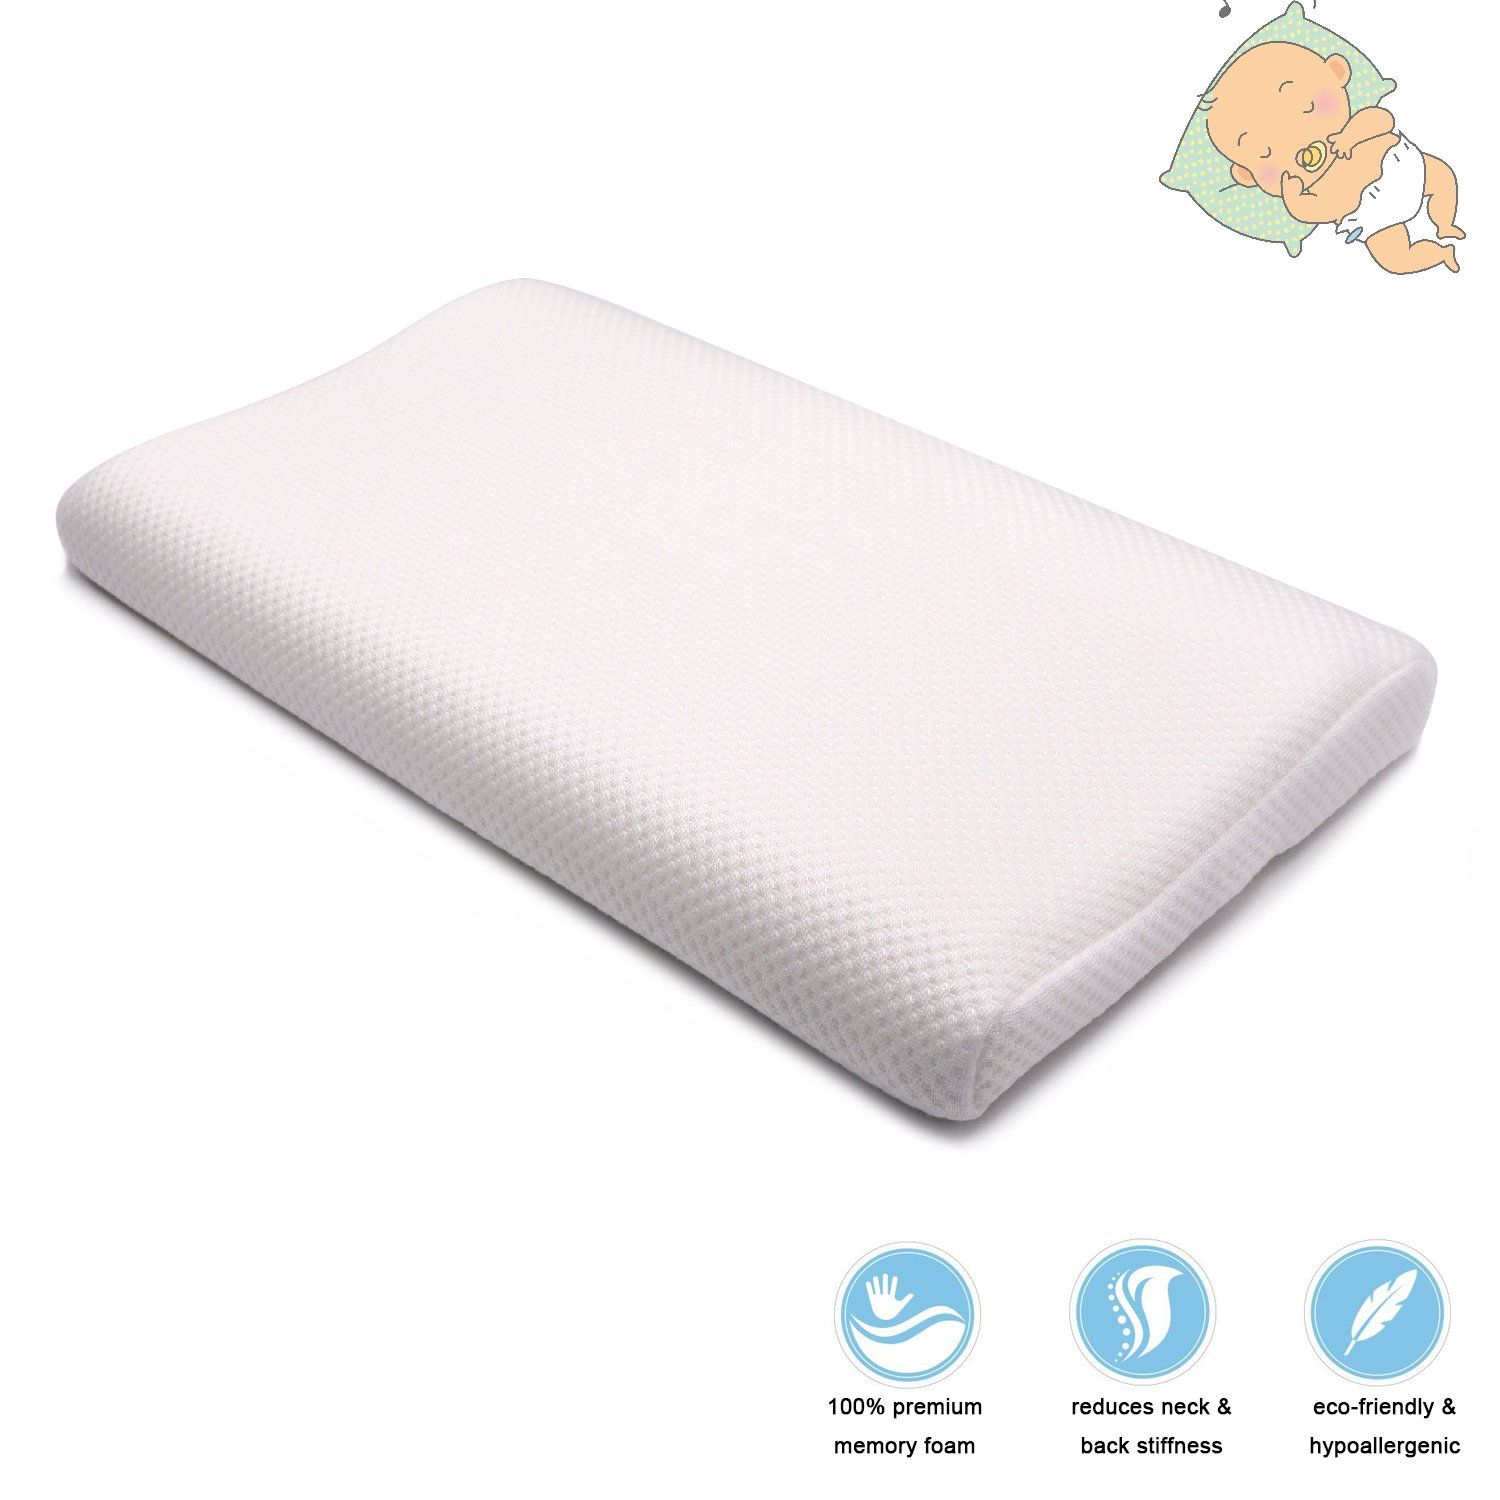 Easy-Tang Baby Pillow Toddler Memory Foam Pillow for Sleeping, Breathable Contour Pillow Ideal for Babies, Kids, Toddlers, with Removable Zipper Bed Pillow Case